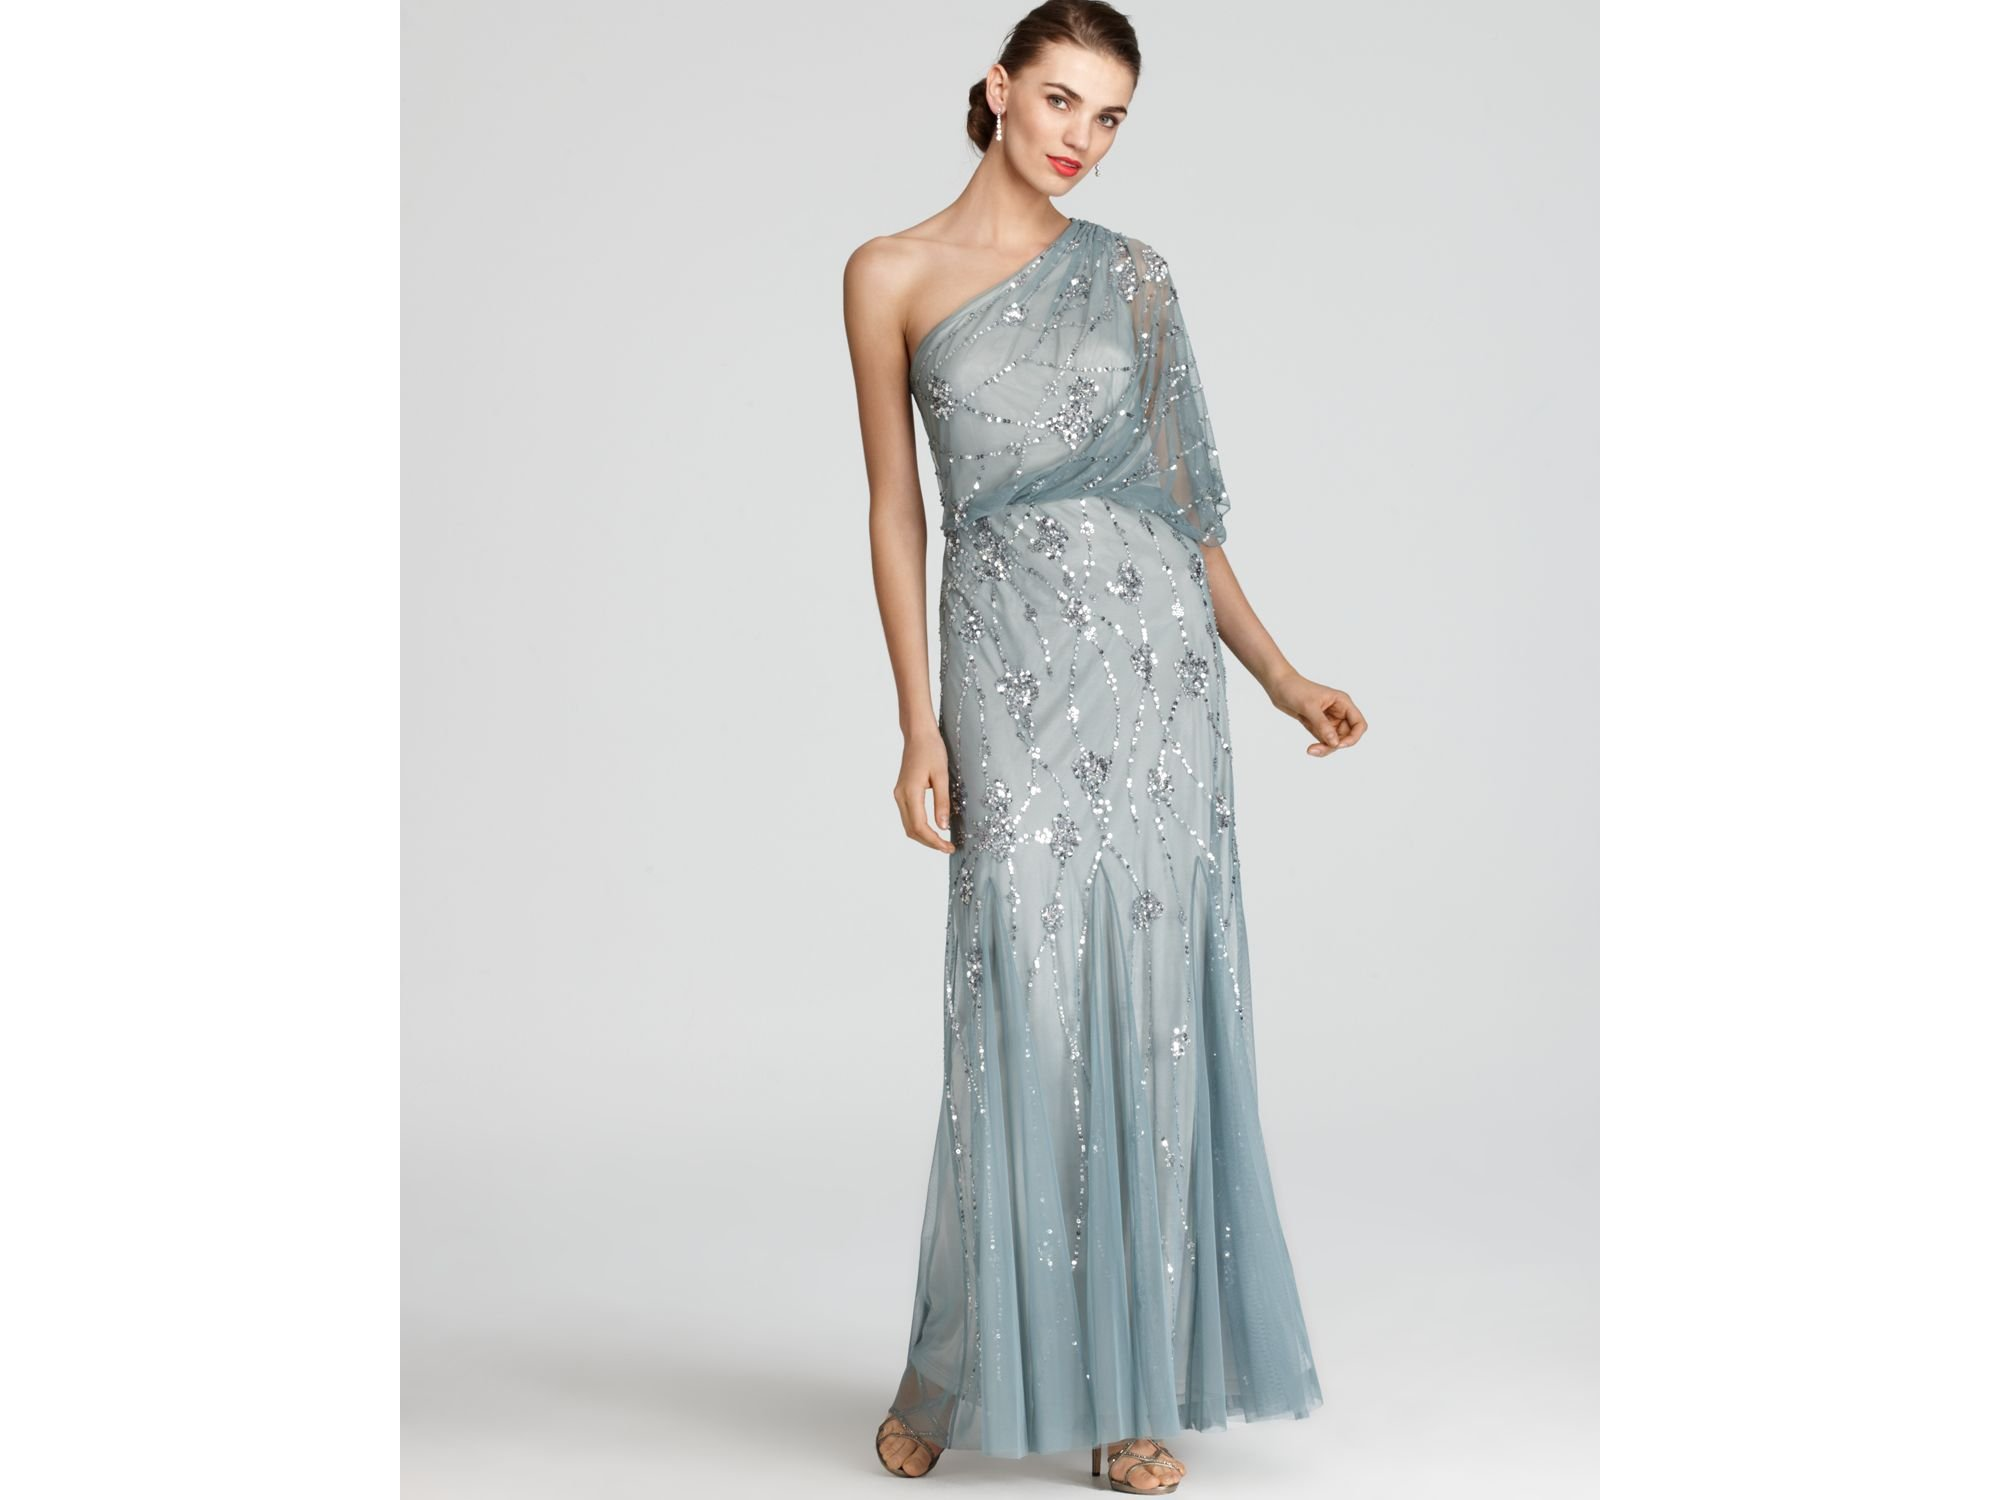 Adrianna papell Gown One Shoulder Sequin in Gray  Lyst